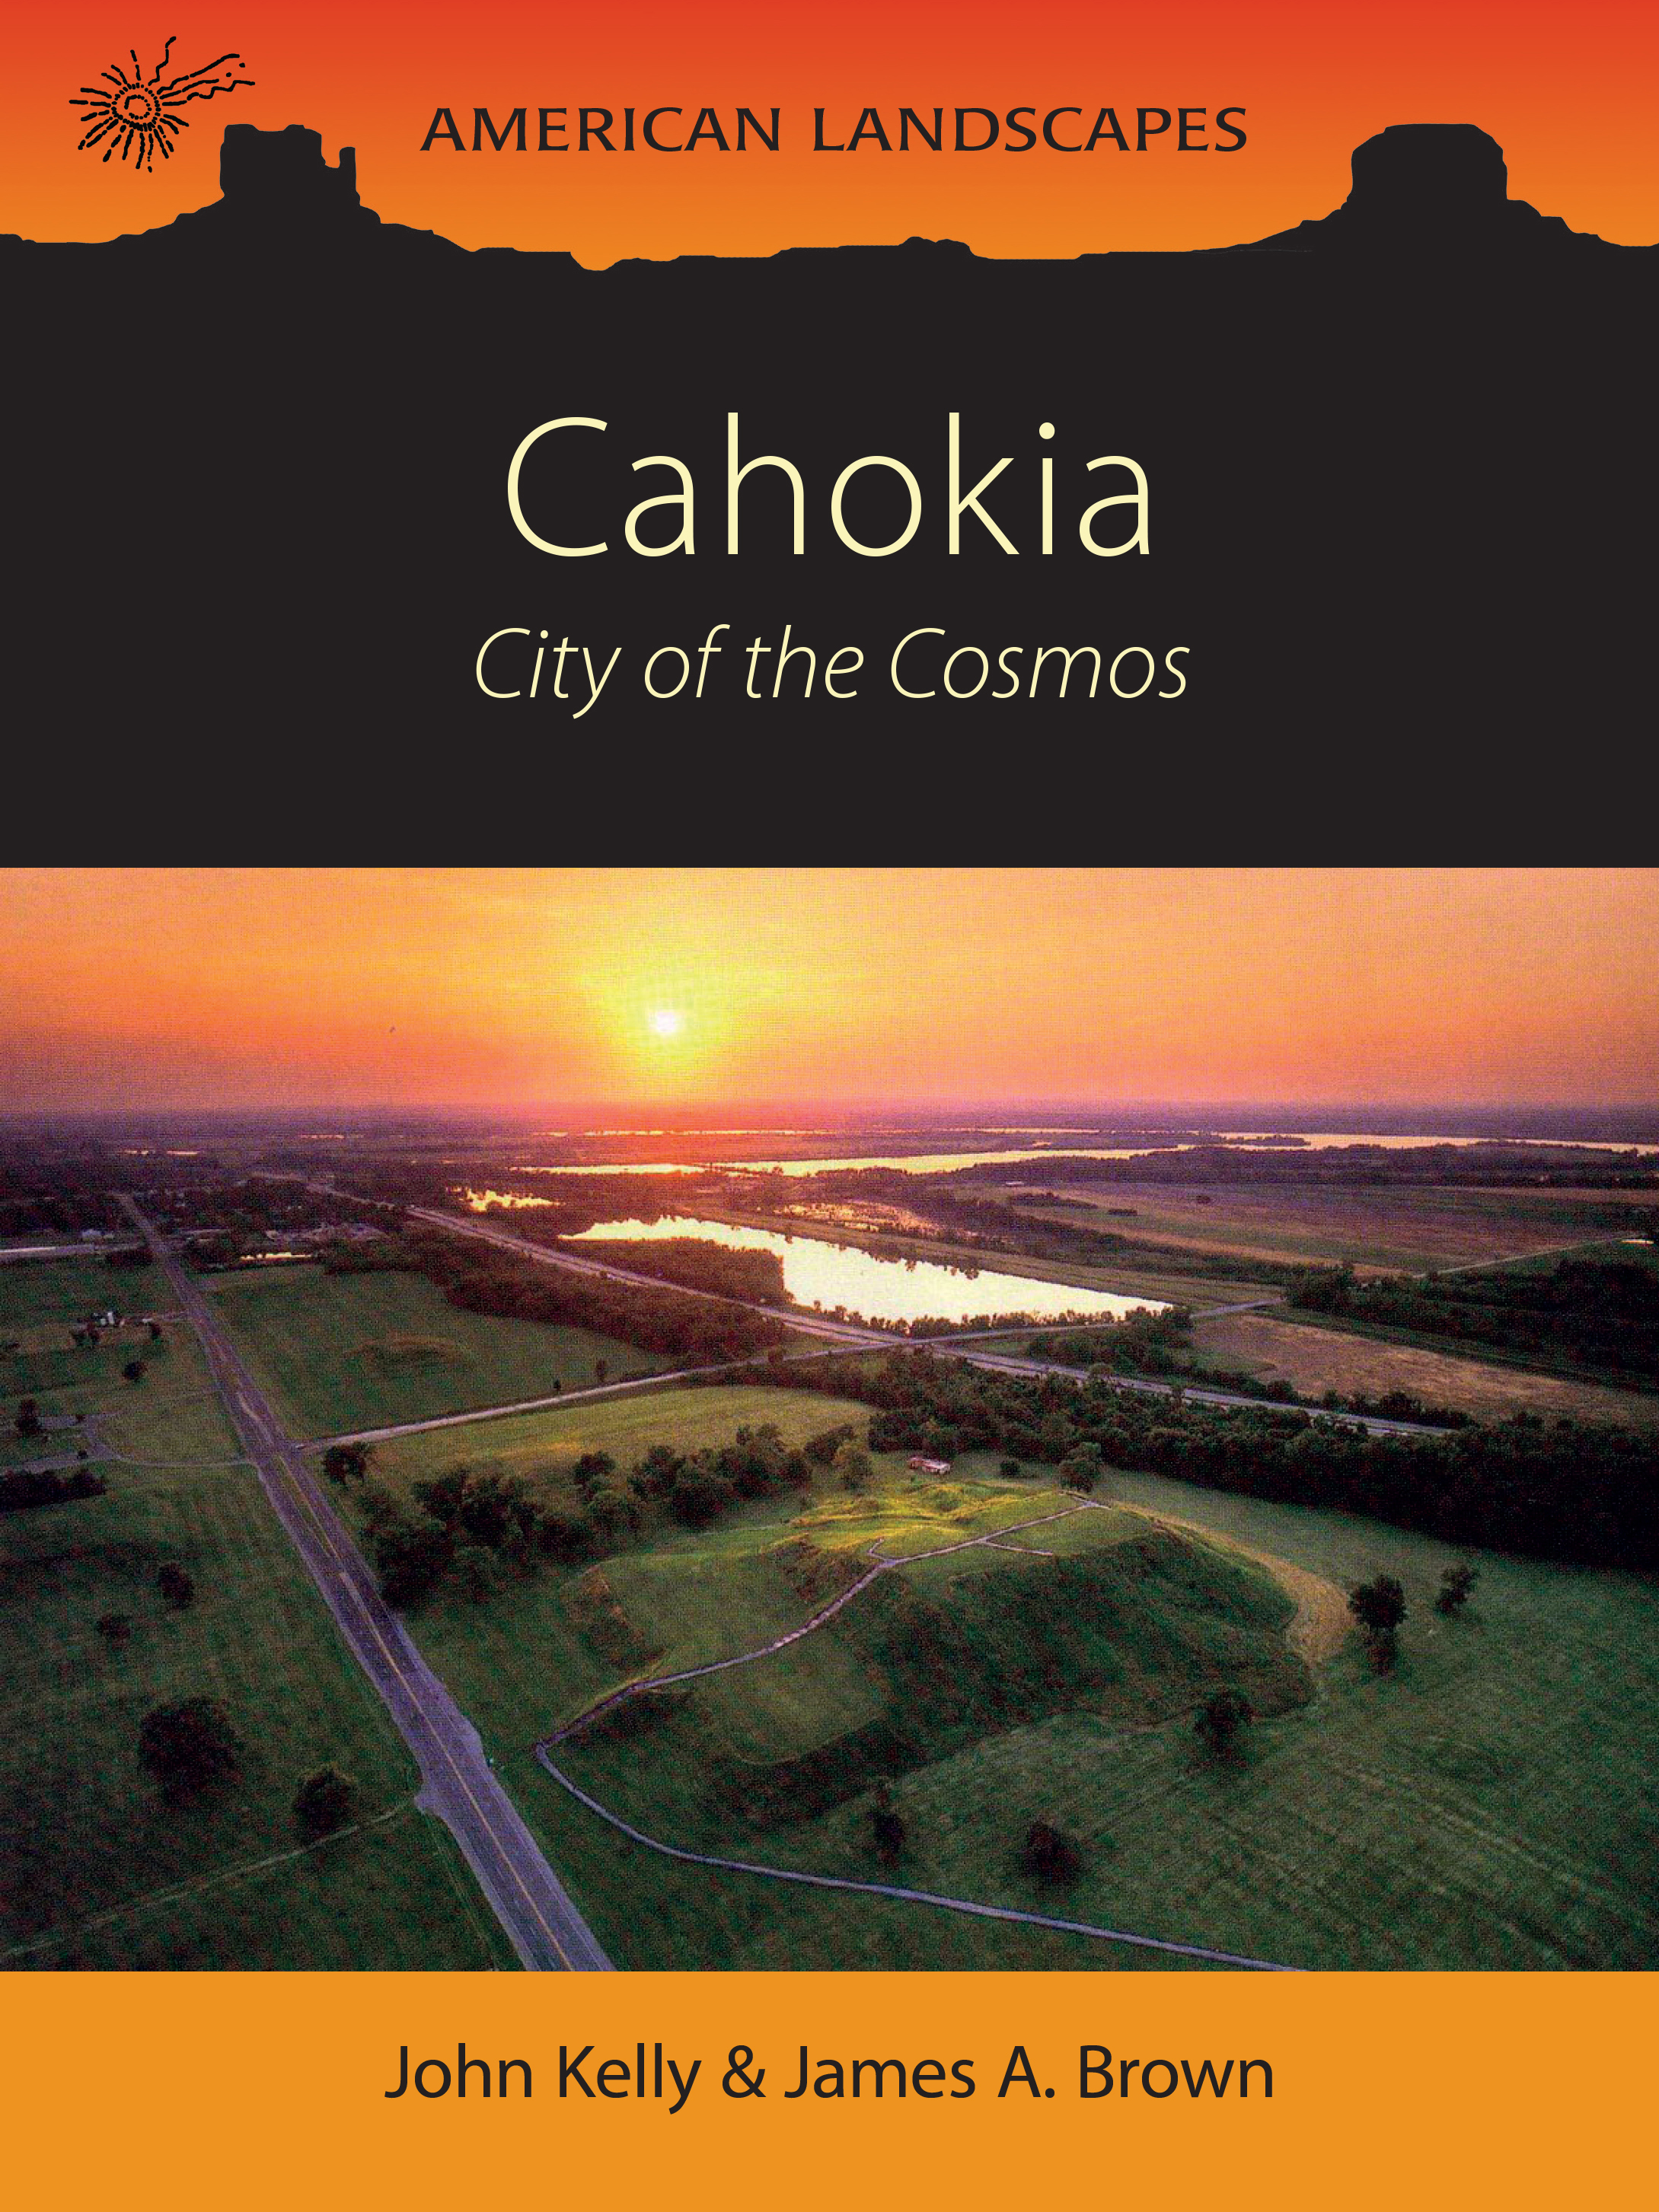 American Landscapes series Cahokia cover